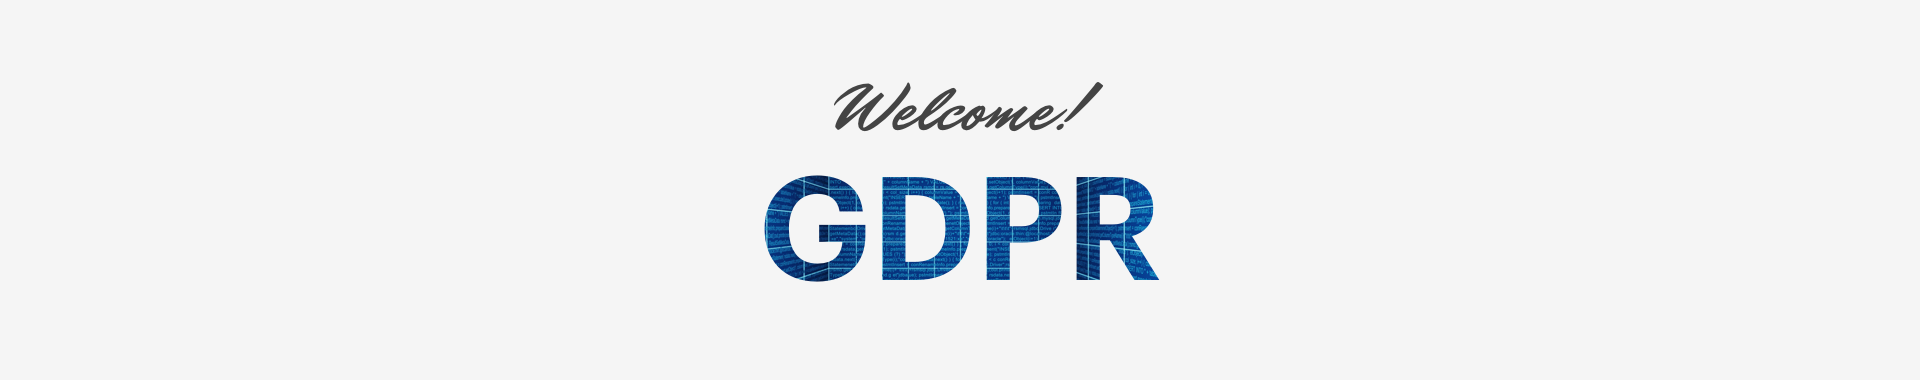 Welcome, GDPR!